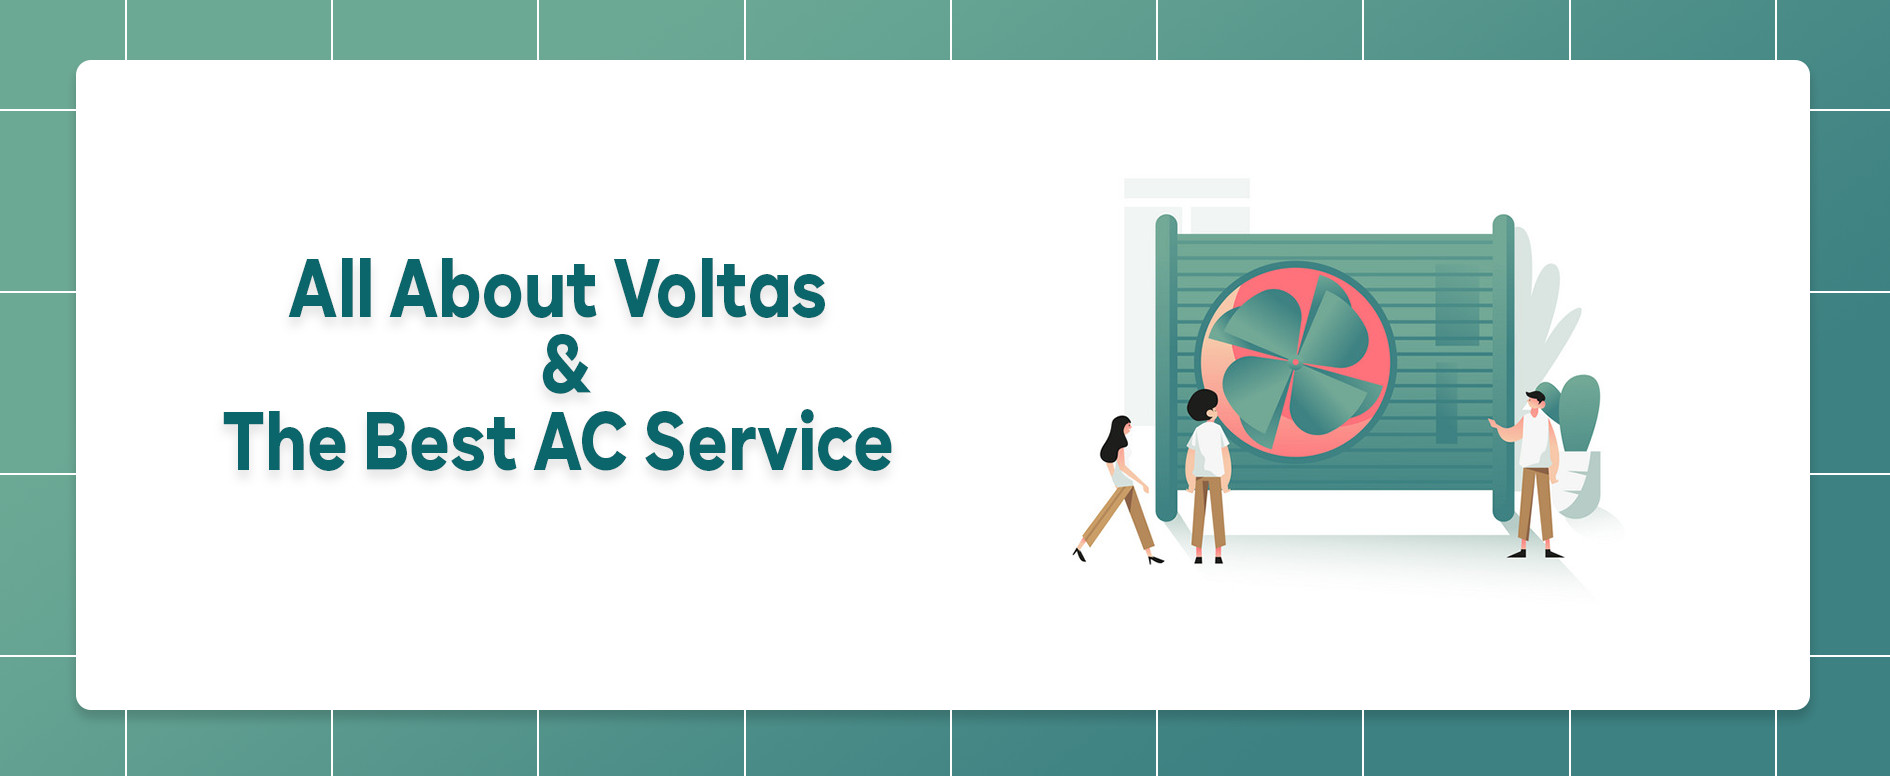 All About Voltas & The Best AC Service